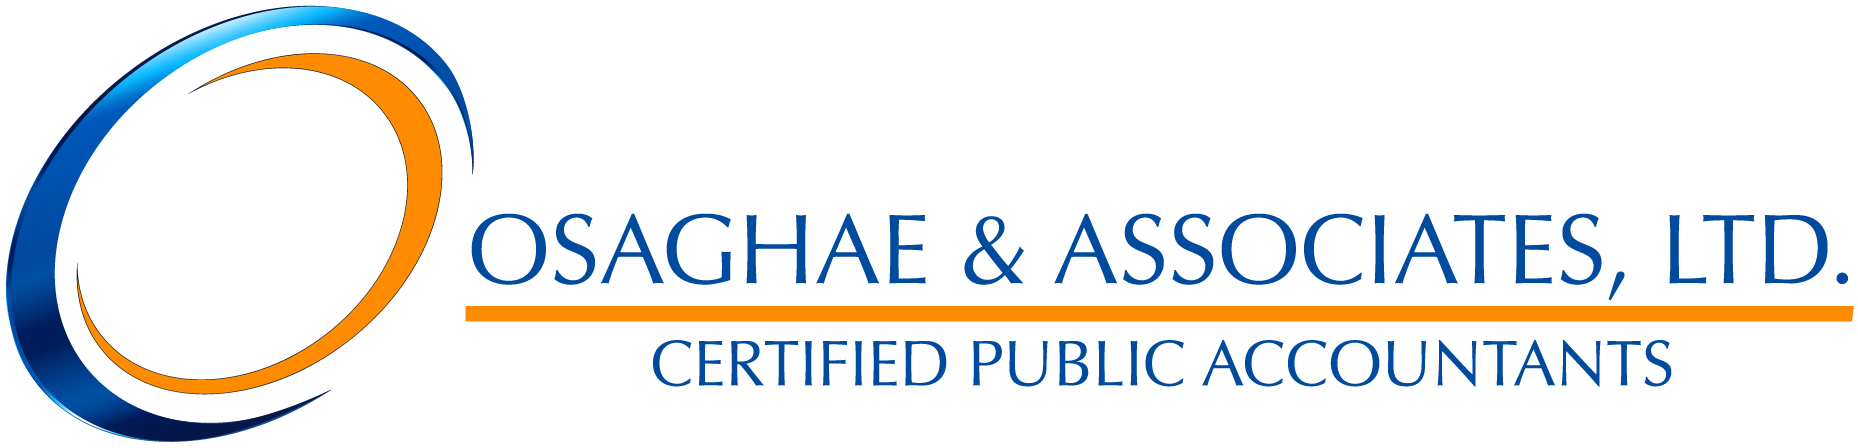 Chicago, Illinois Accounting Firm | Home Page | Osaghae & Associates, Ltd.